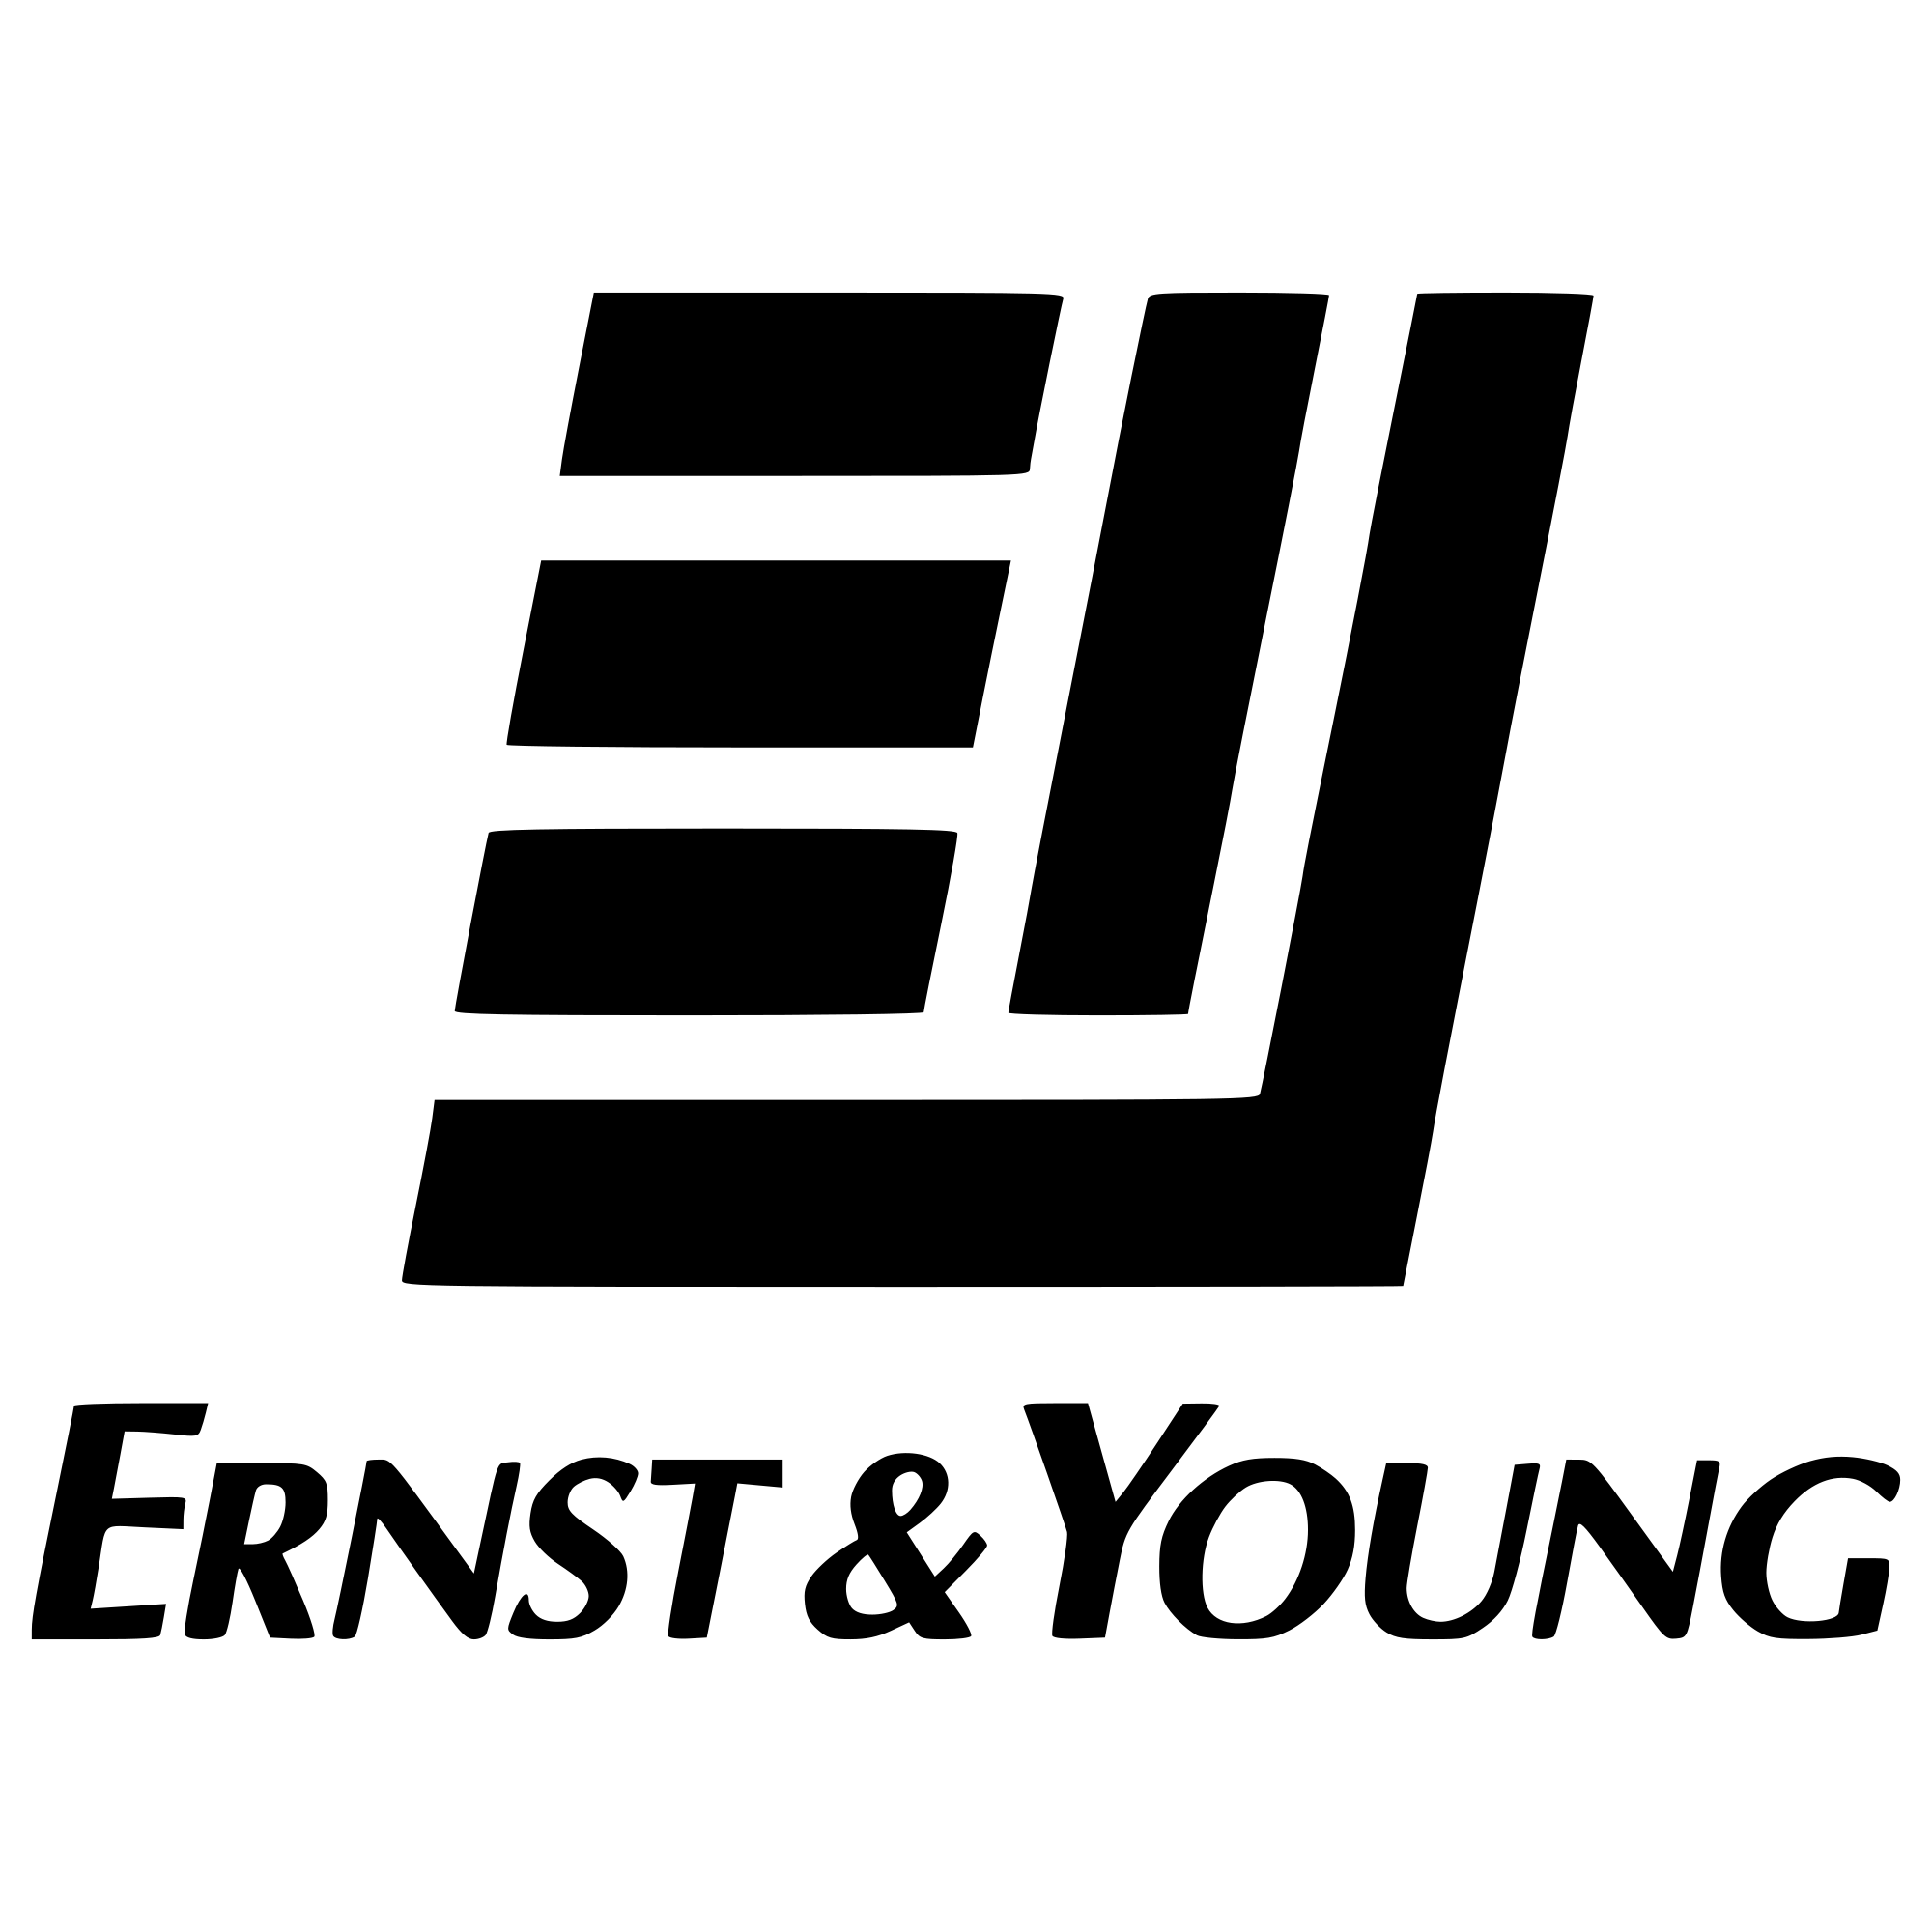 Ernst & young logo png. File corporate svg wikimedia